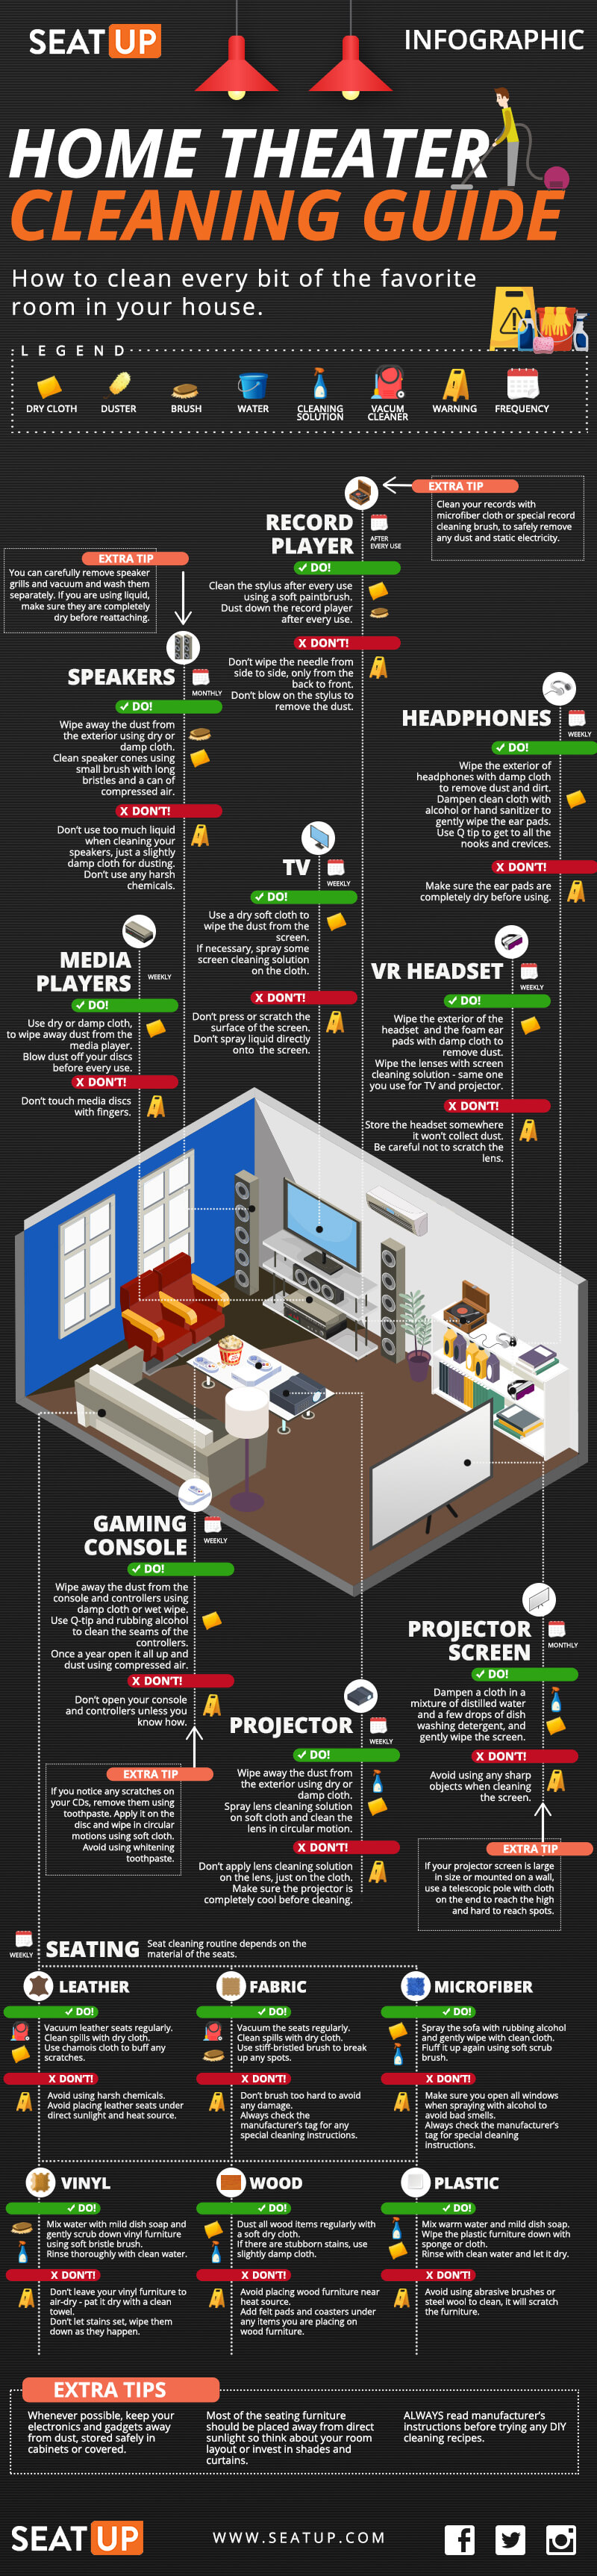 home-theater-cleaning-guide-infographic-plaza